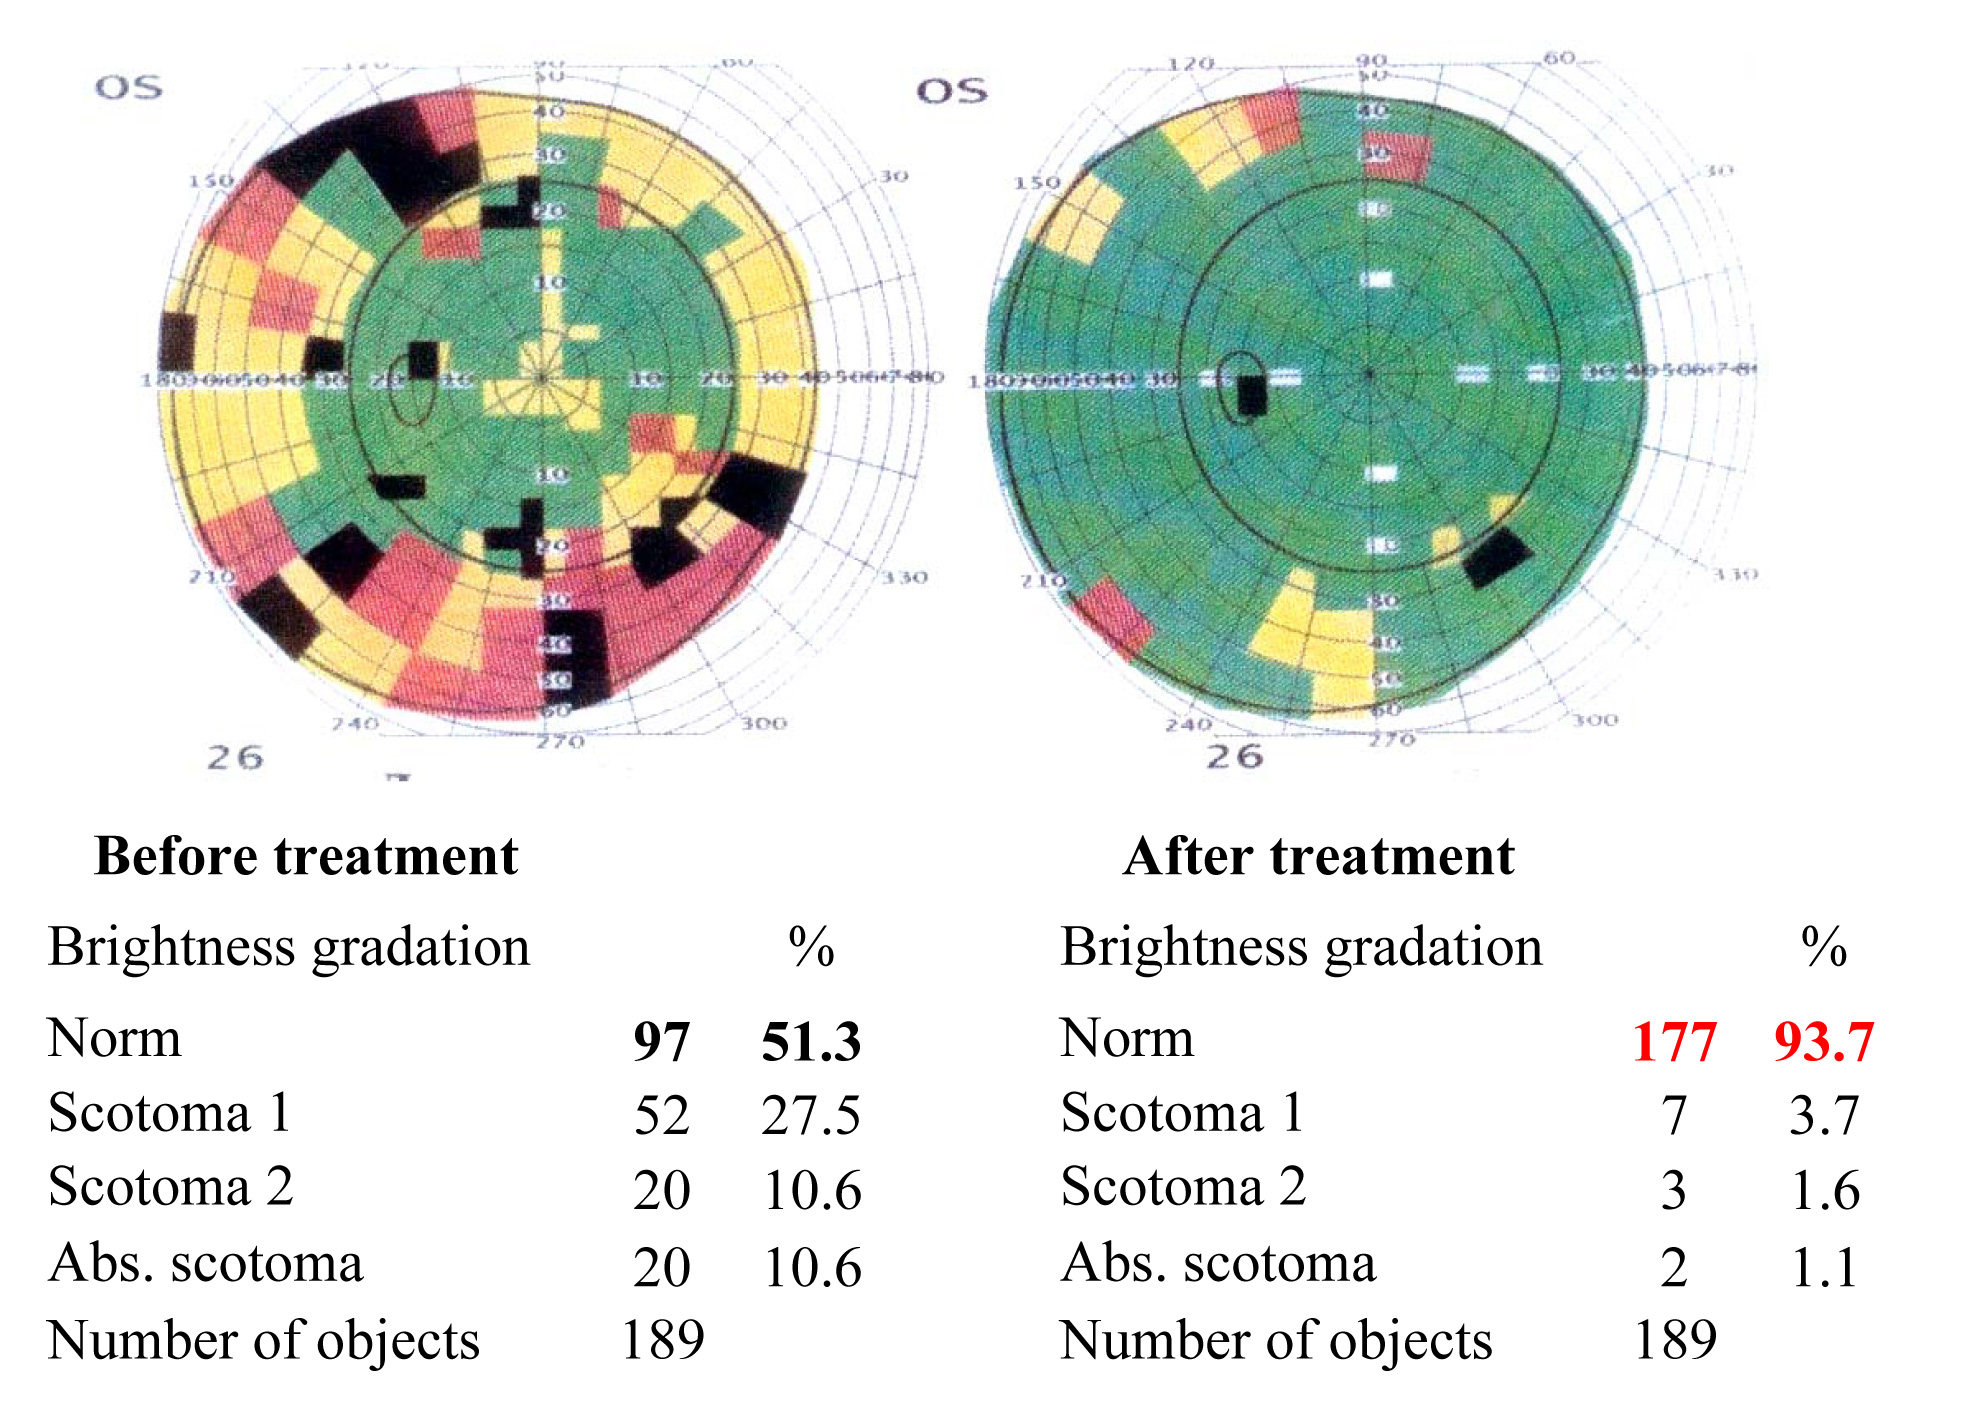 Results of the visual functions tests before and after the treatment course